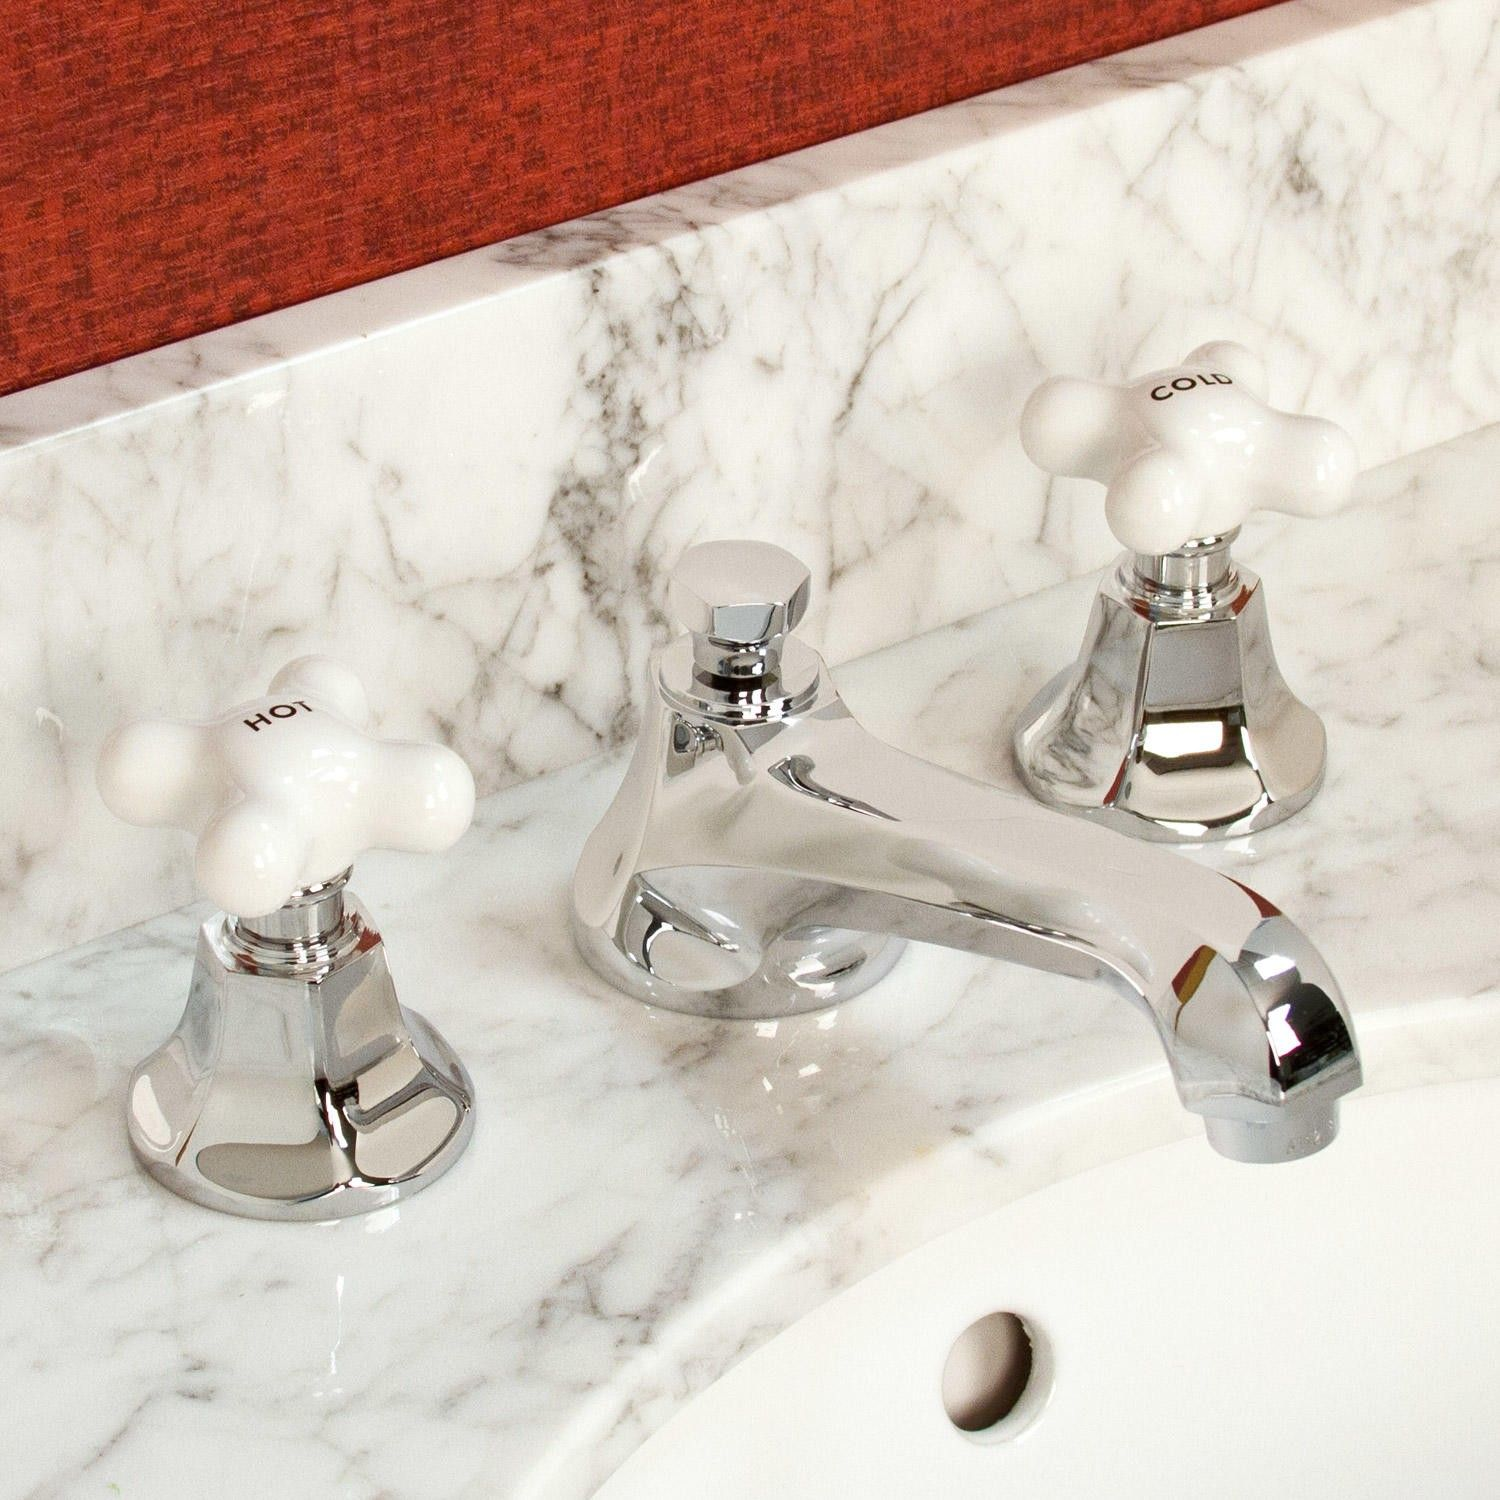 New+York+Widespread+Bathroom+Faucet+-+Small+Porcelain+Cross+ ...